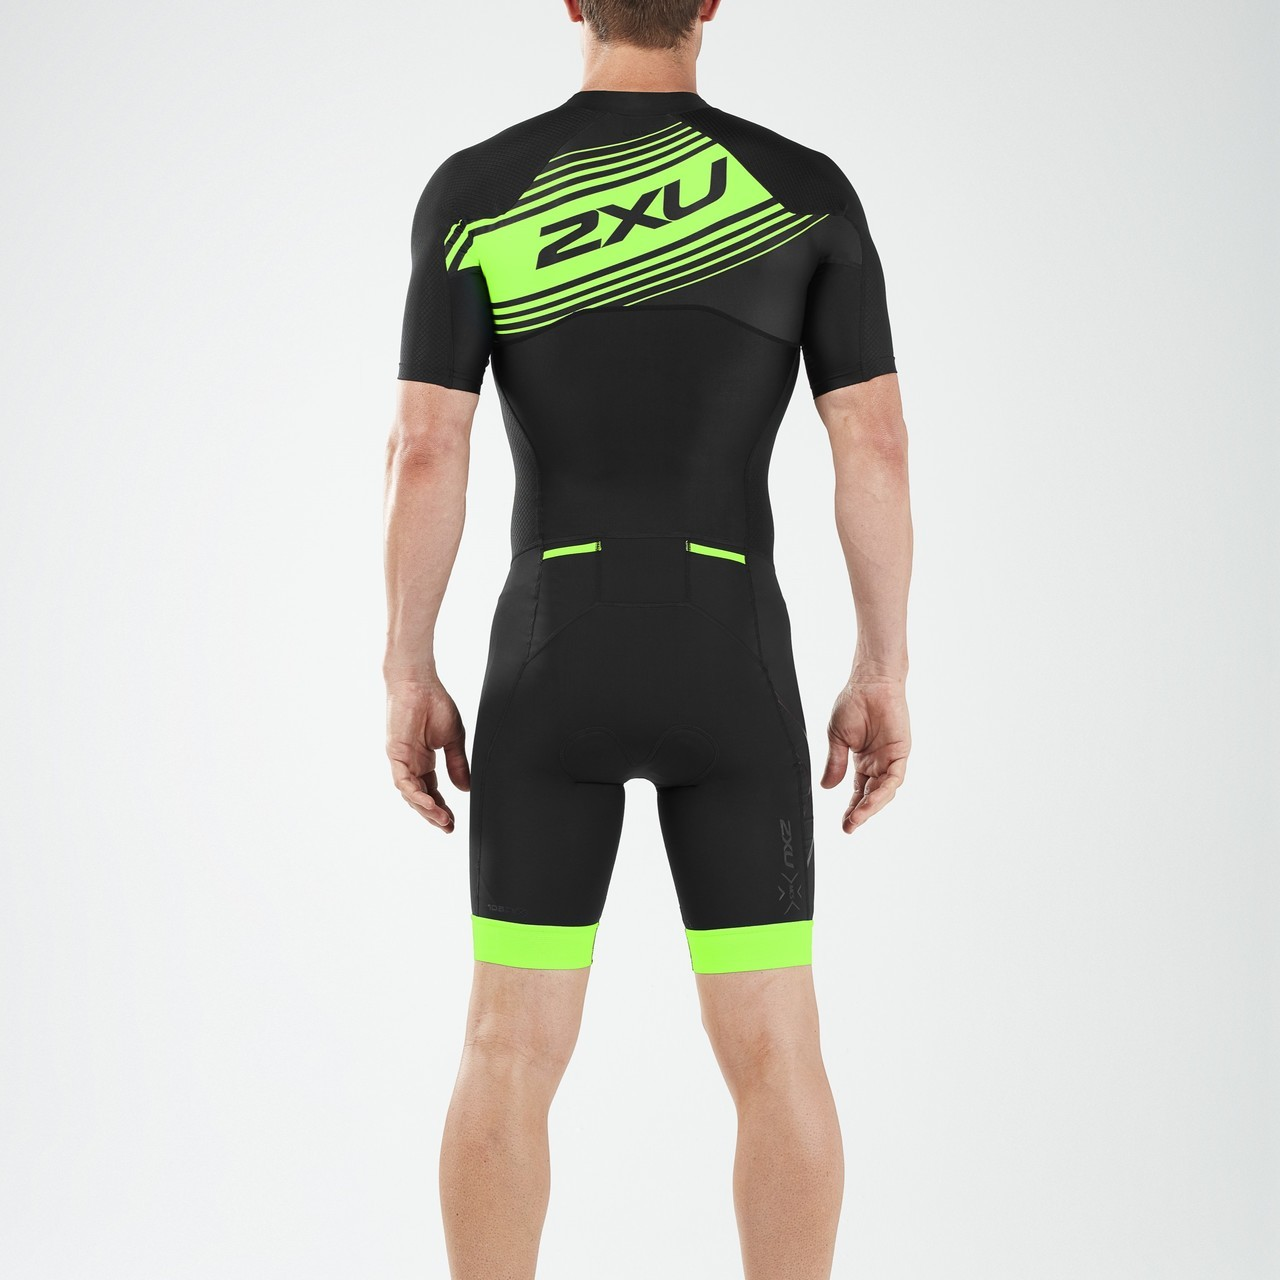 BODY 2XU MEN'S COMPRESSION FULL ZIP SLEEVED TRISUIT MT4838d black green logo back.jpg